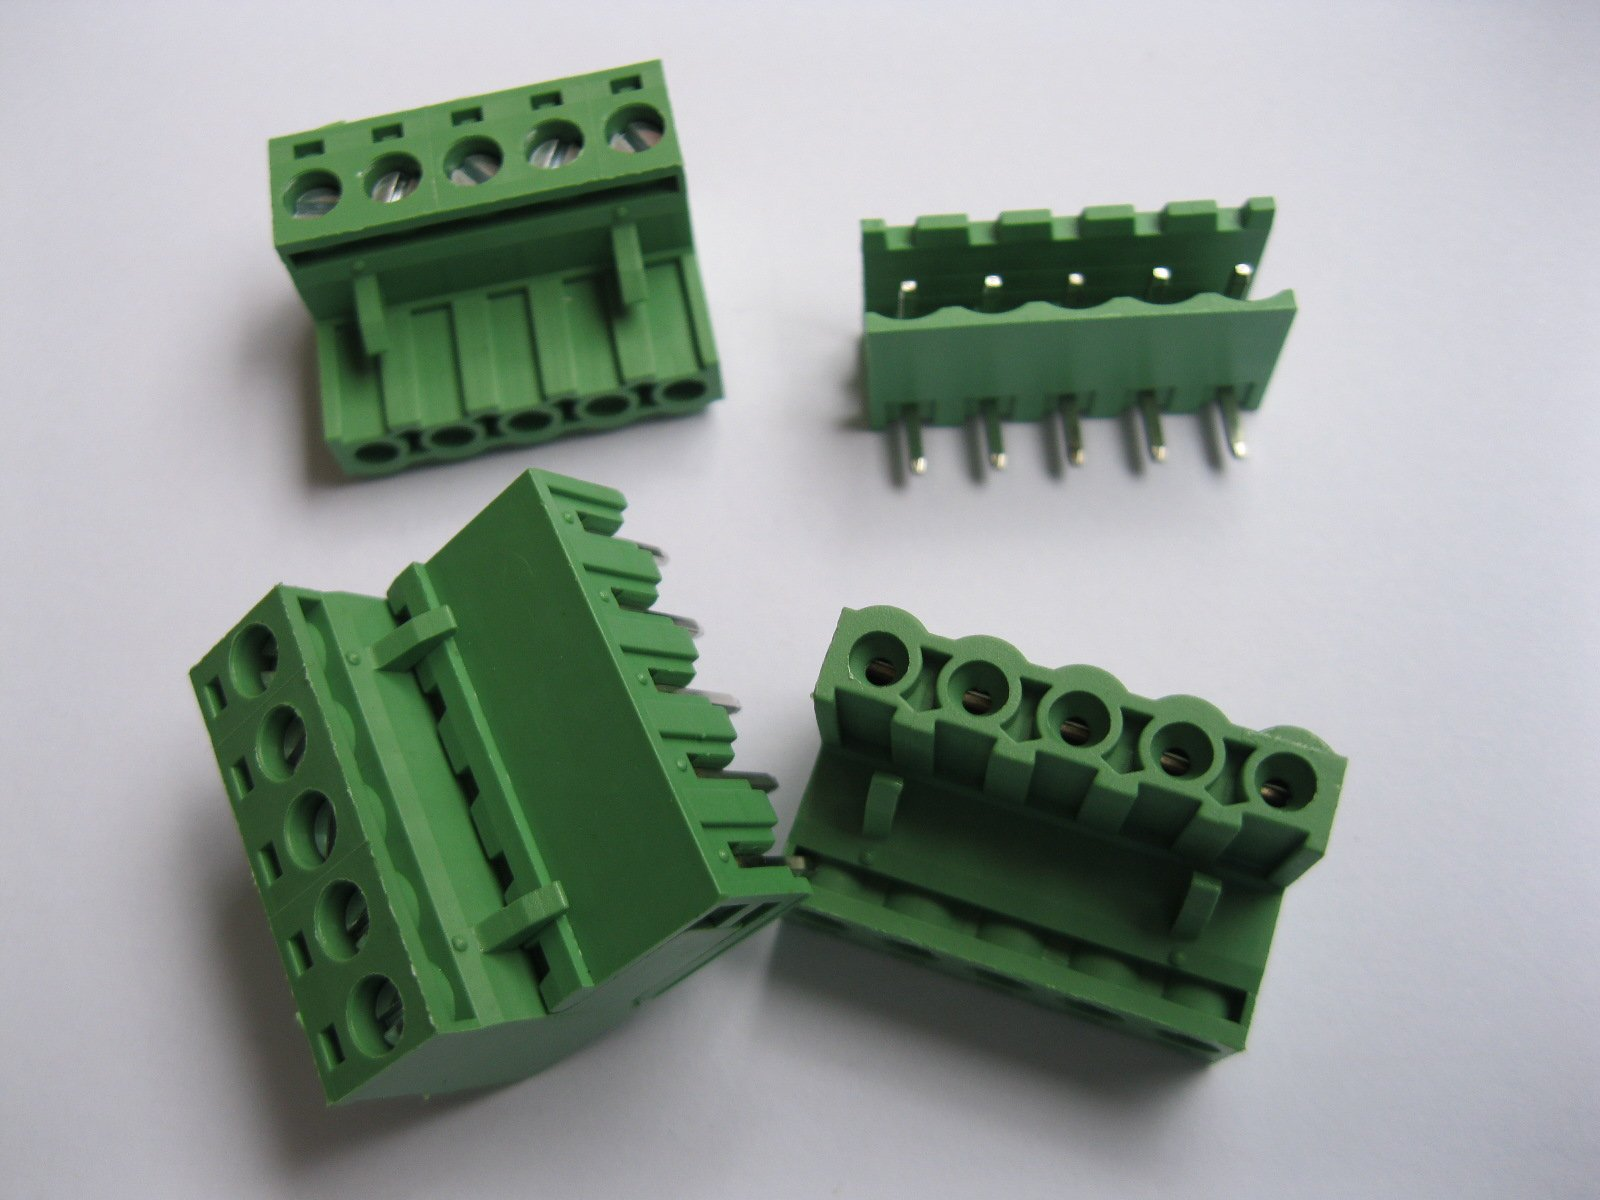 12 Pcs Pitch 5.08mm Angle 5 way/pin Screw Terminal Block Connector w/ Angle-pin Green Color Pluggable Type Skywalking